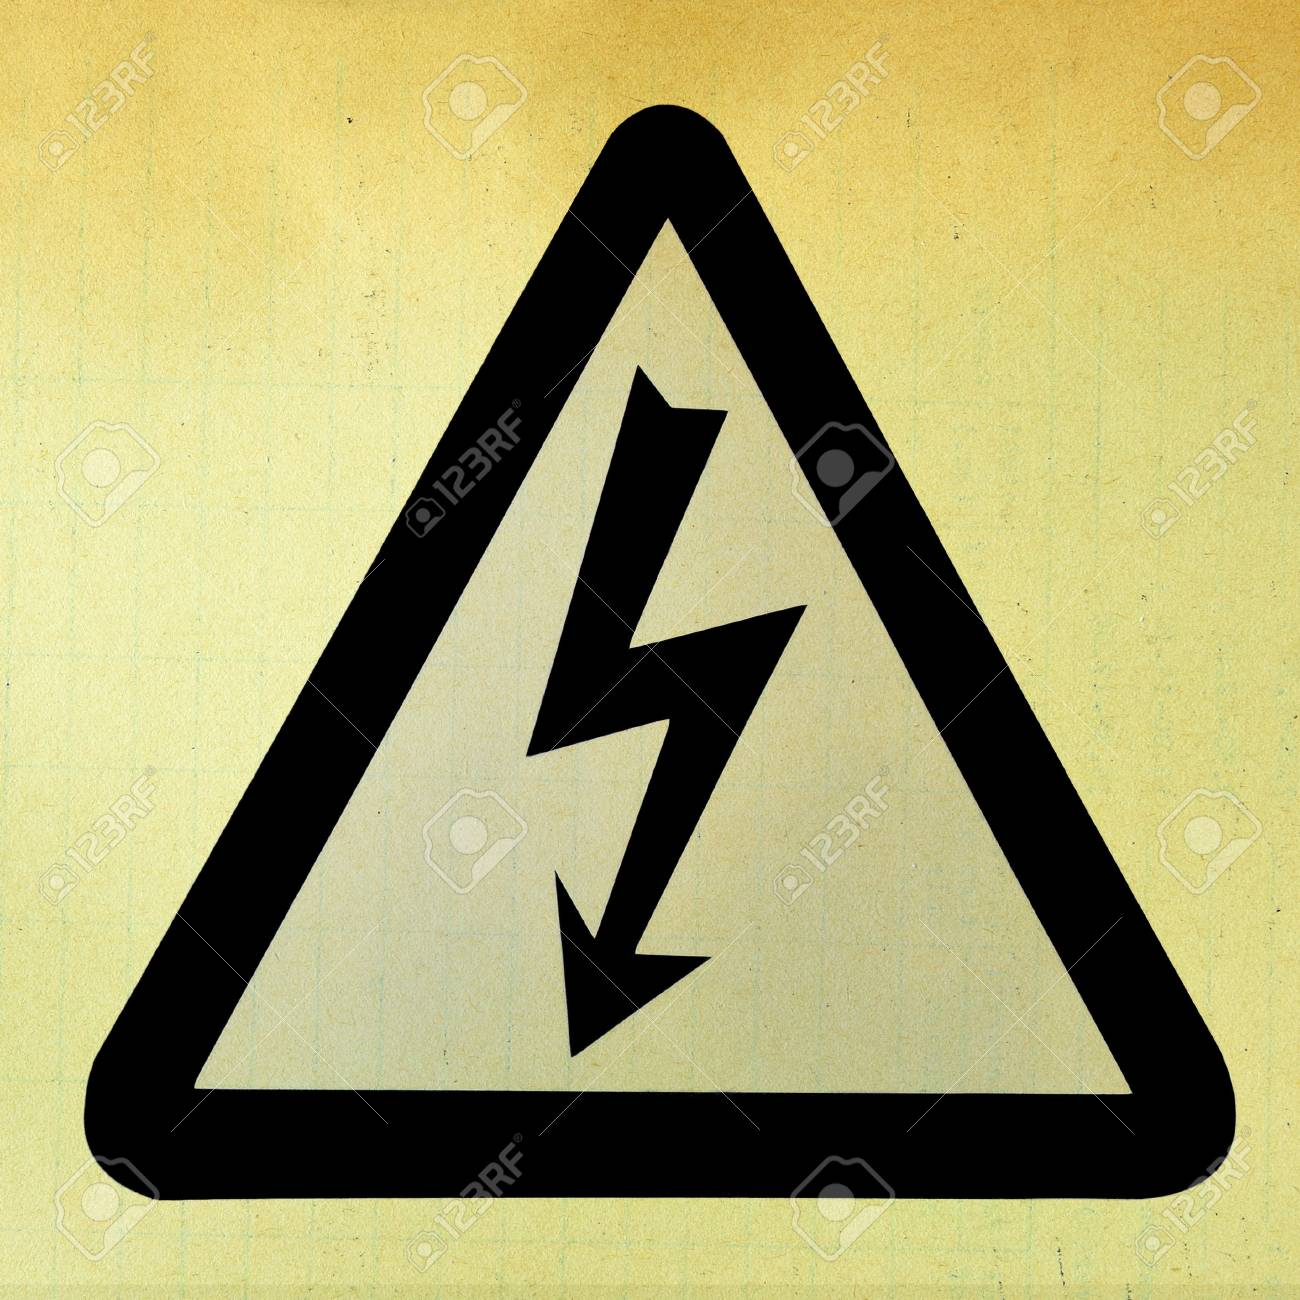 High Voltage Sign in grunge style Stock Photo - 16260223